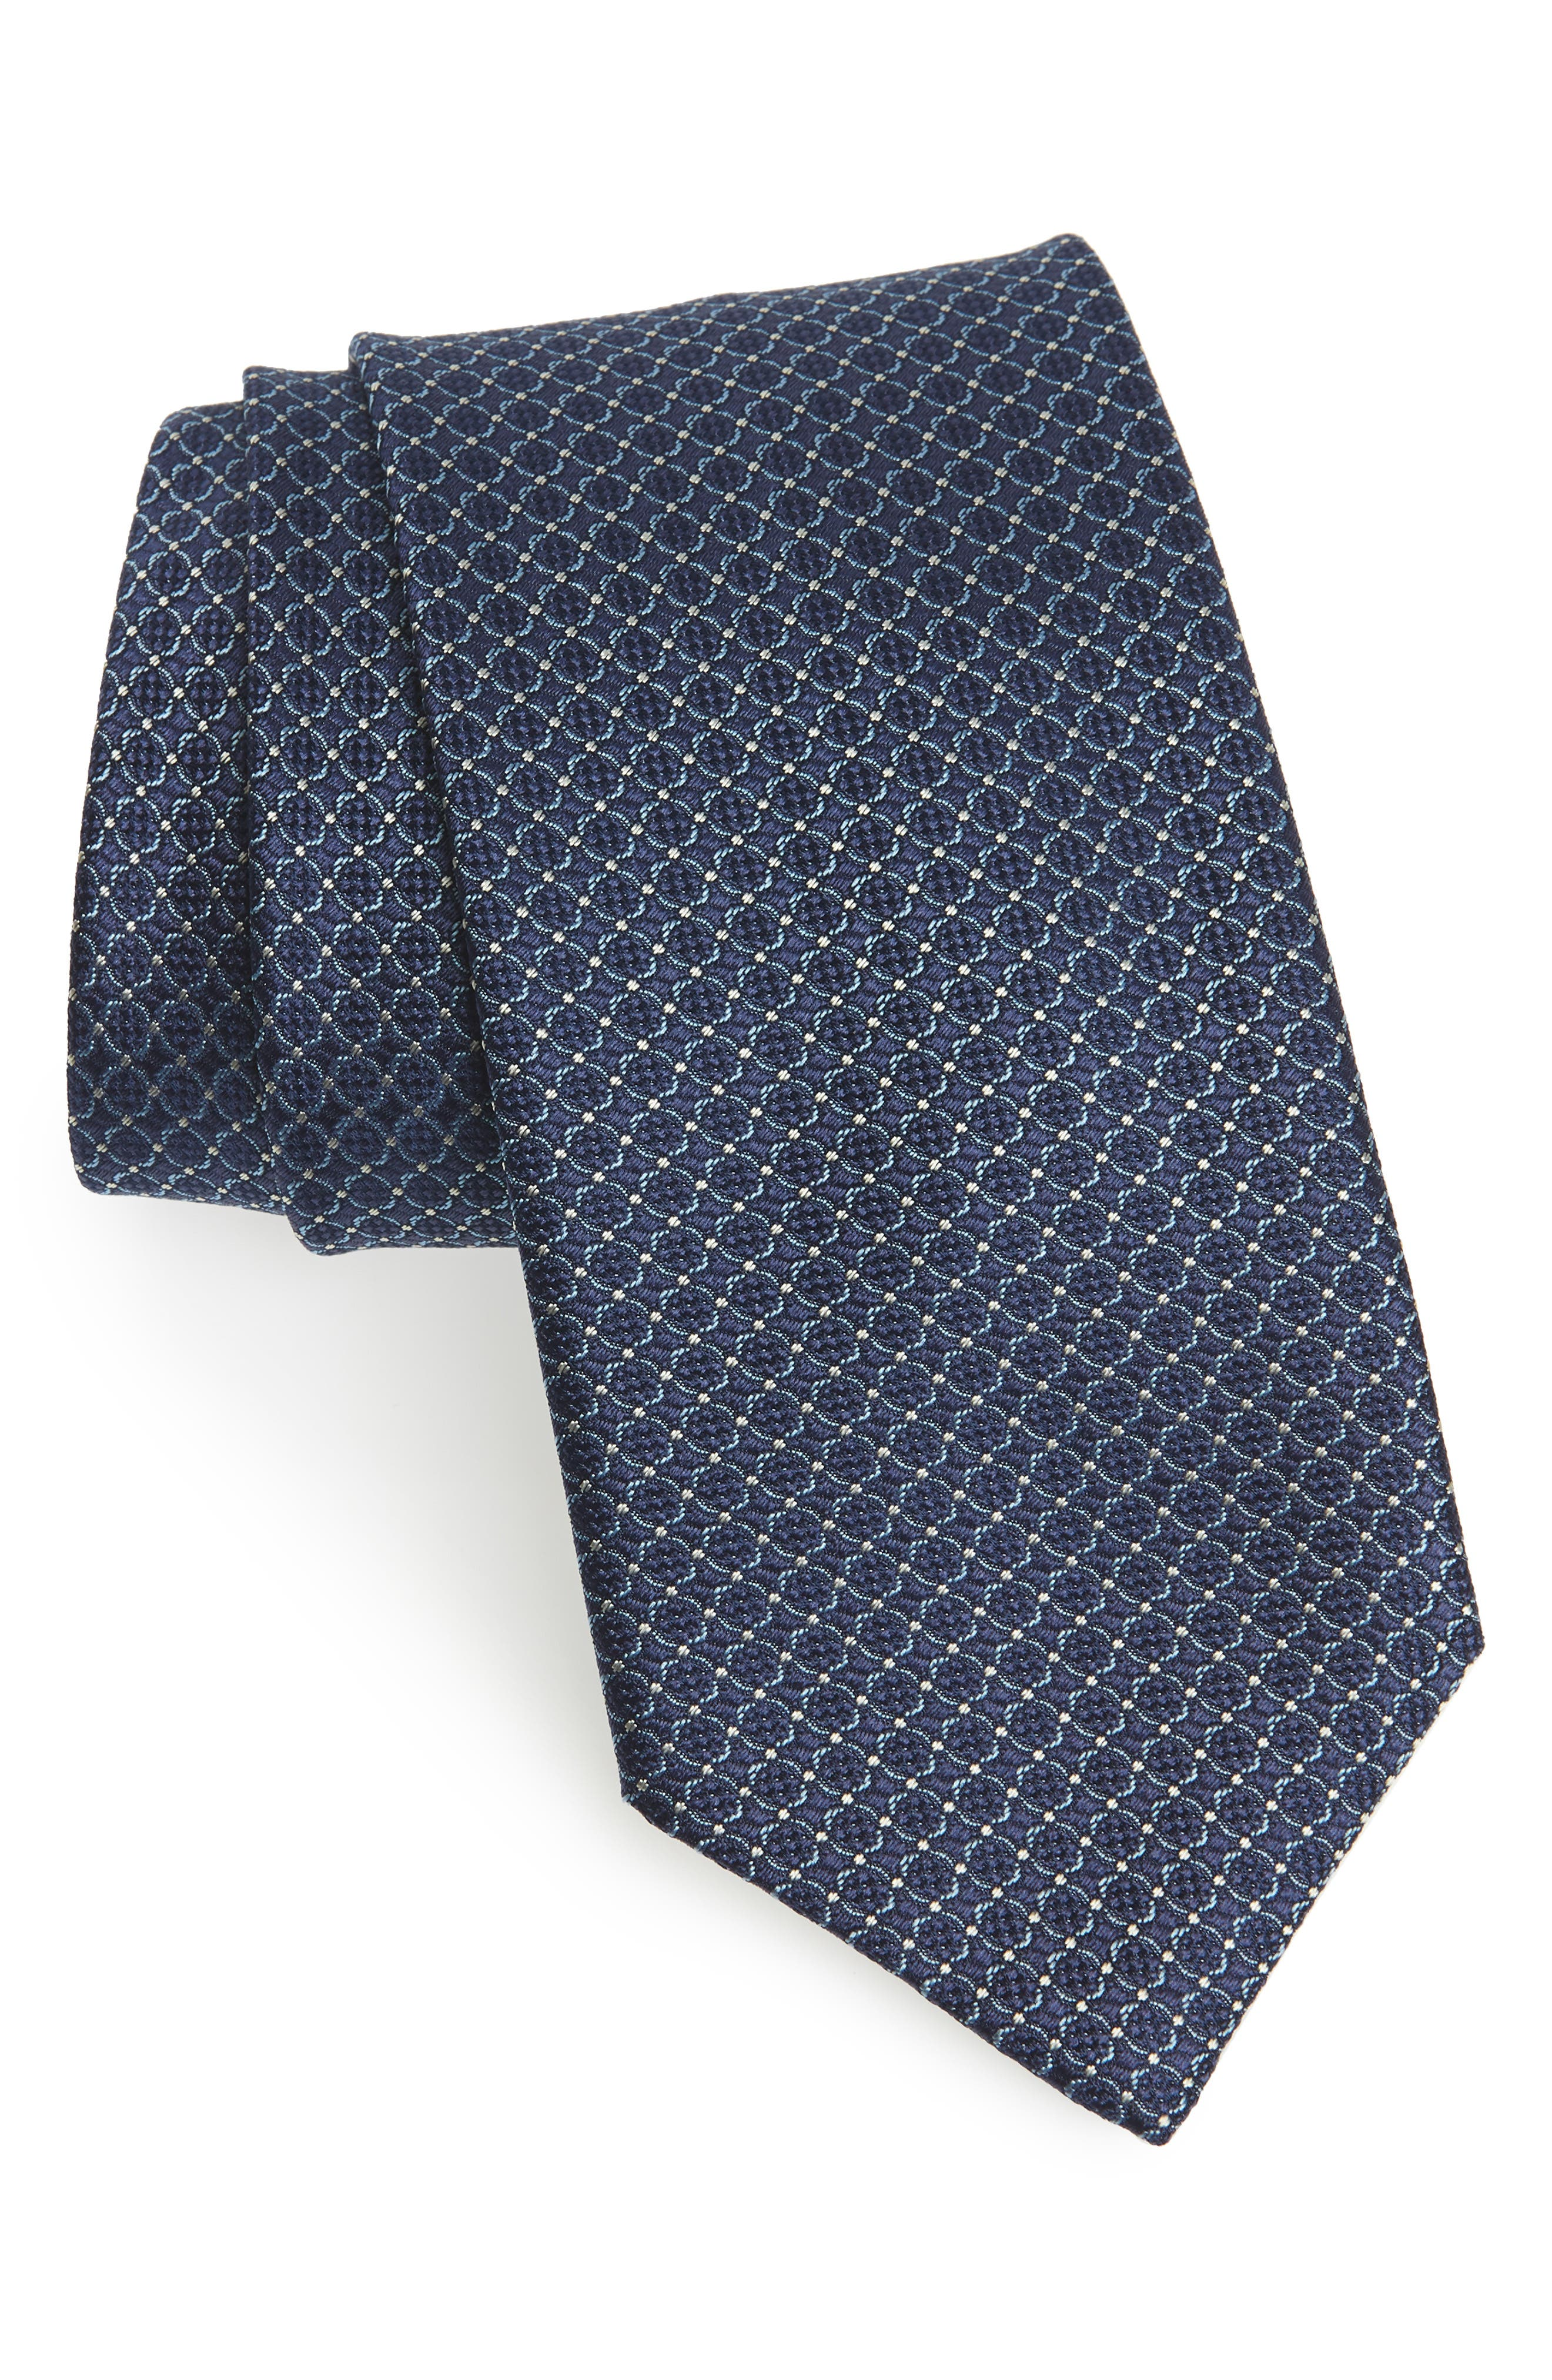 Geometric Silk Tie,                             Main thumbnail 1, color,                             430